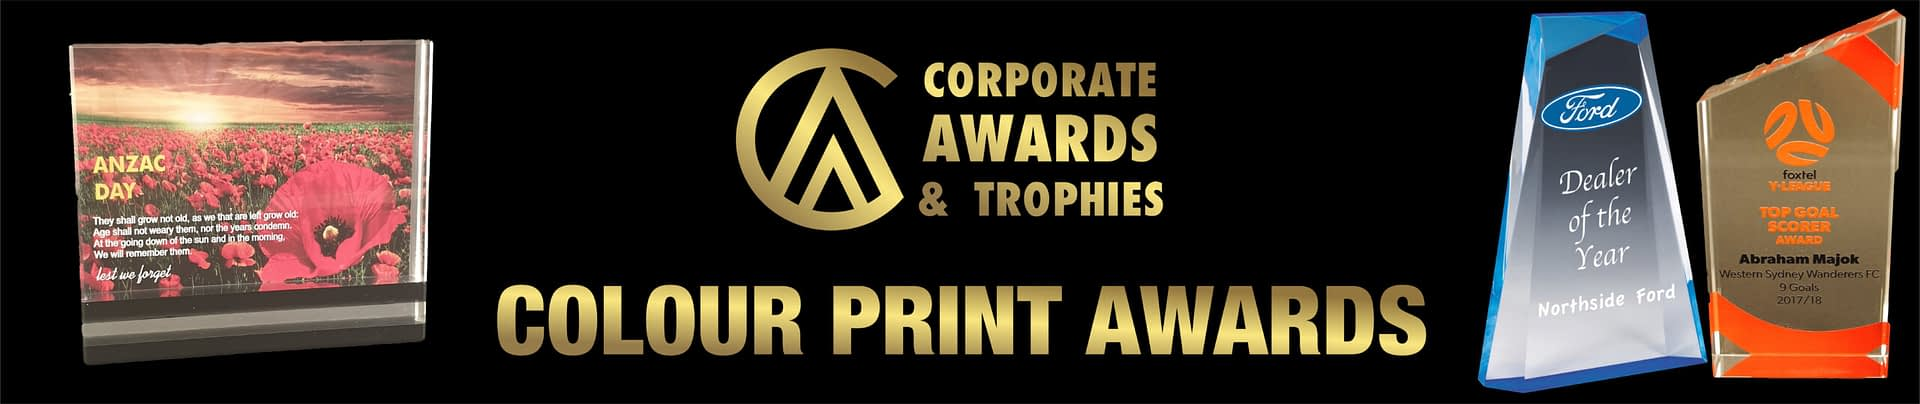 Awards with Colour Print